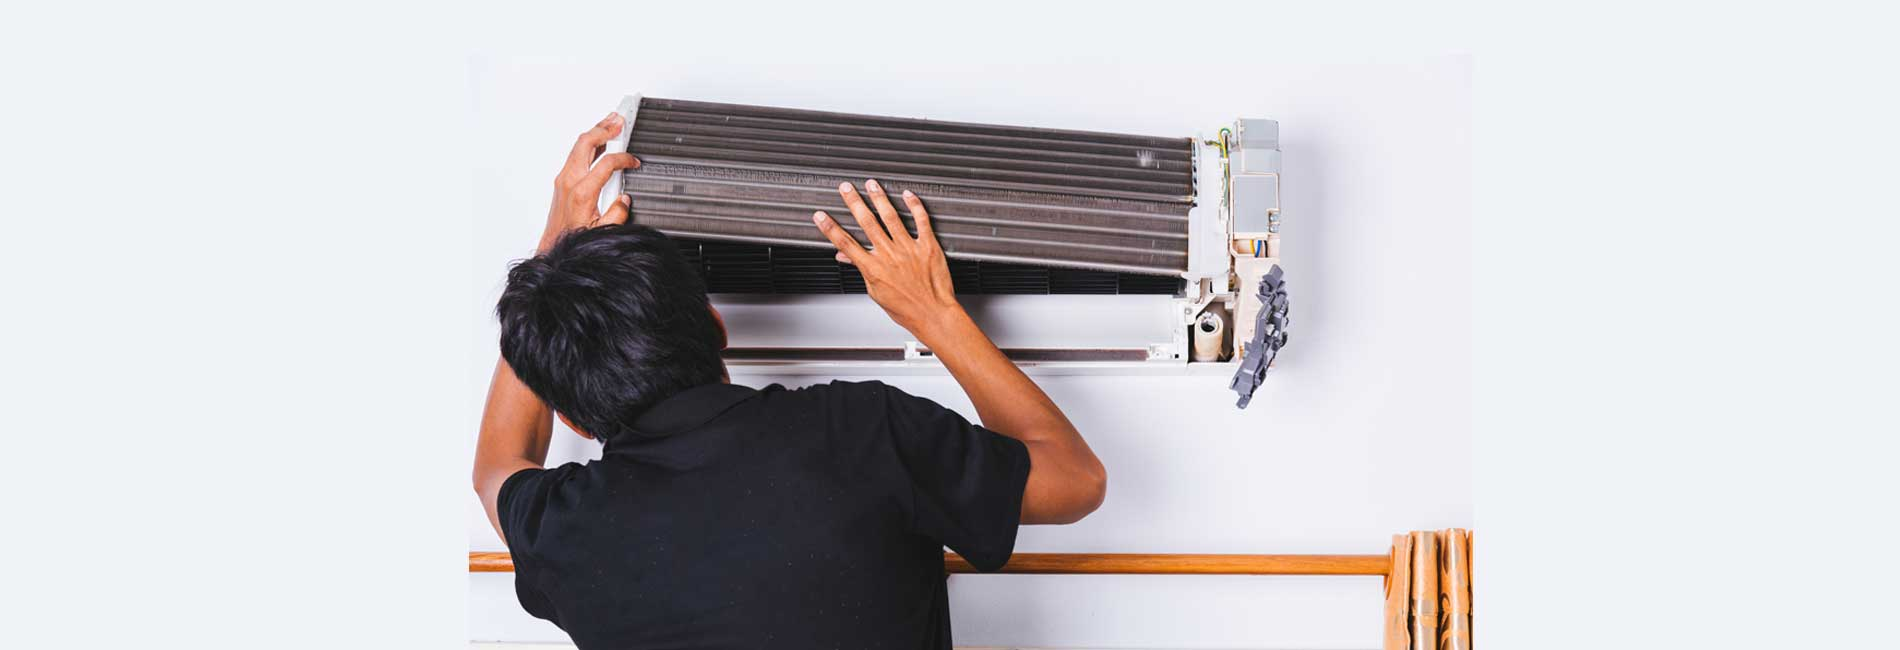 Bluestar Air Condition Repair in Keelkattalai